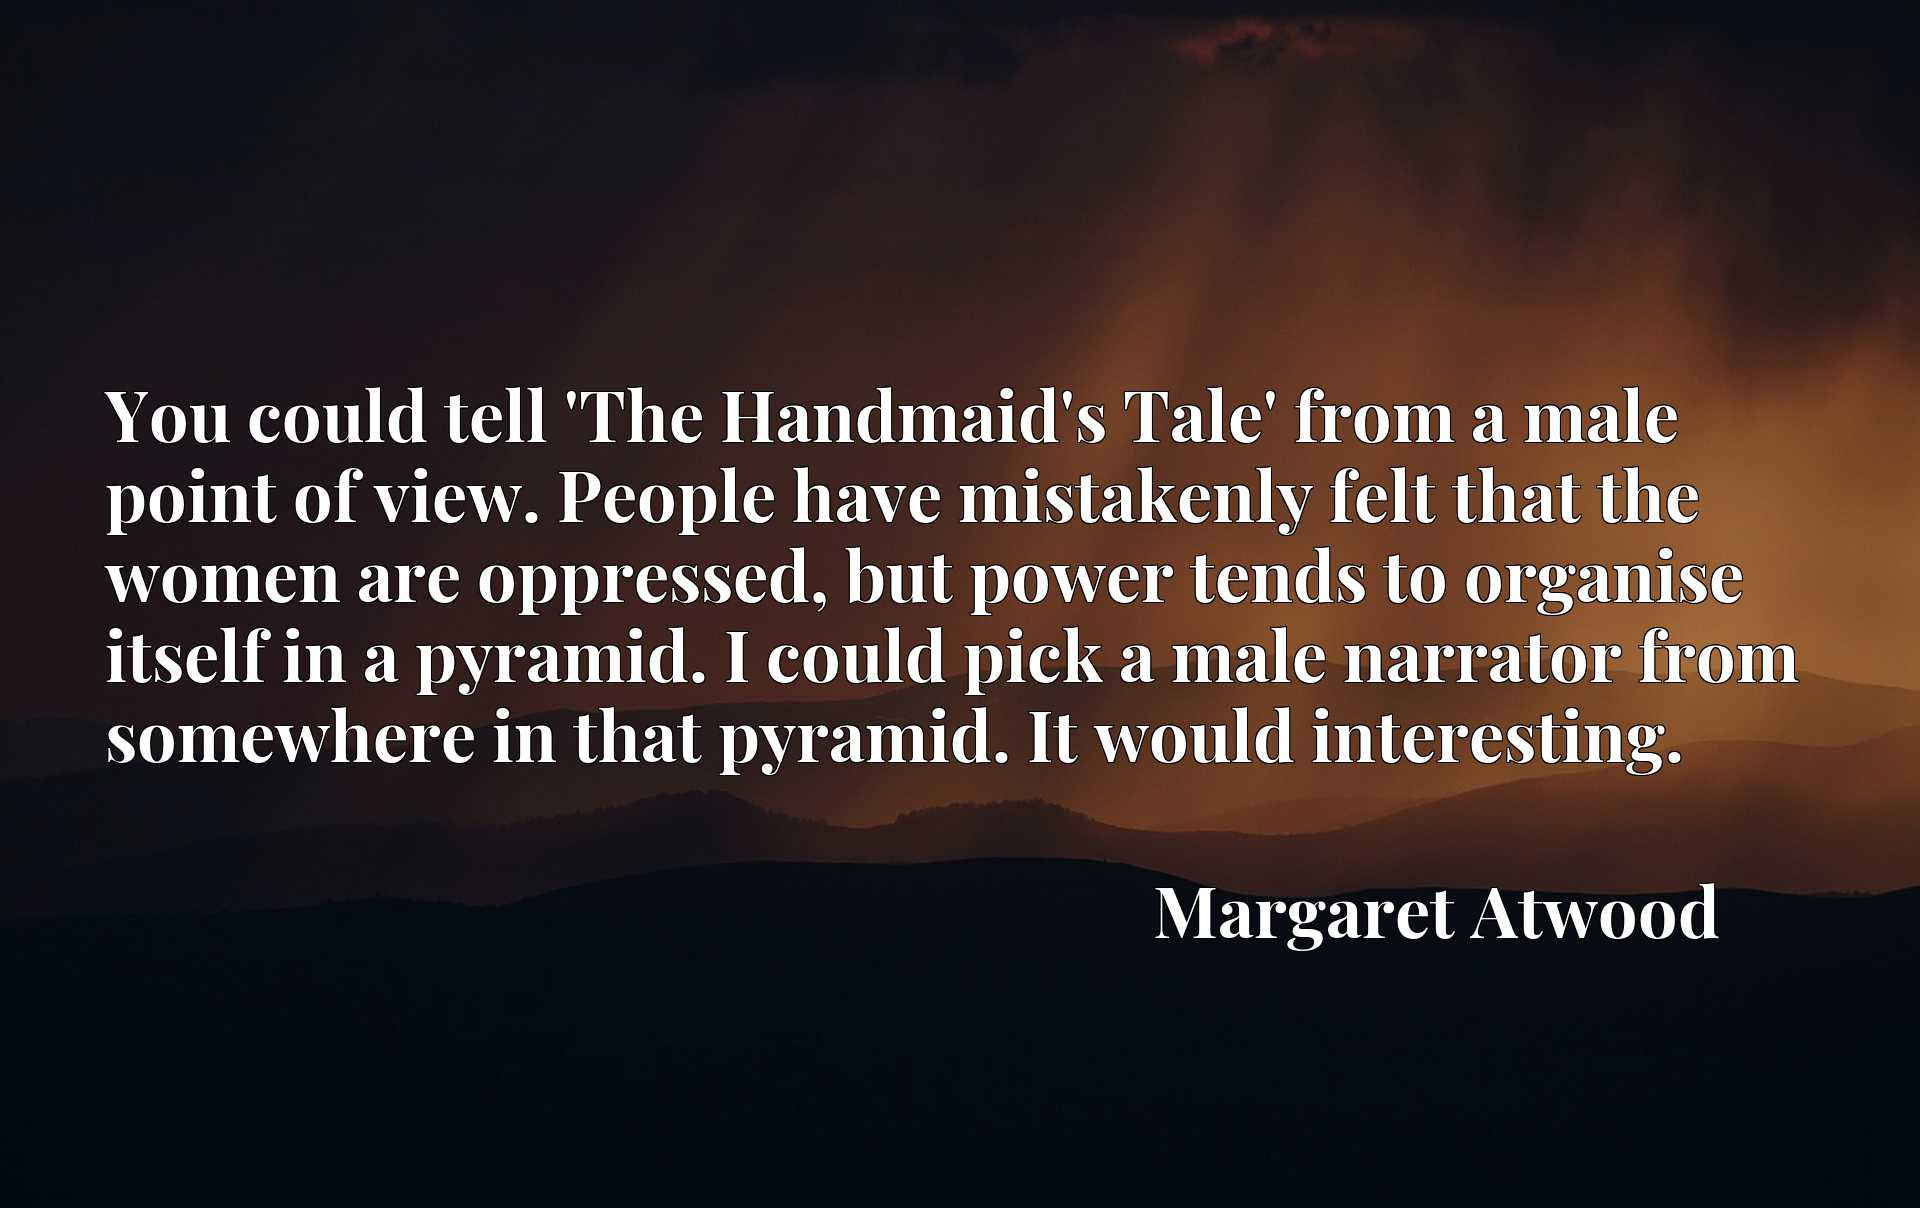 You could tell 'The Handmaid's Tale' from a male point of view. People have mistakenly felt that the women are oppressed, but power tends to organise itself in a pyramid. I could pick a male narrator from somewhere in that pyramid. It would interesting.